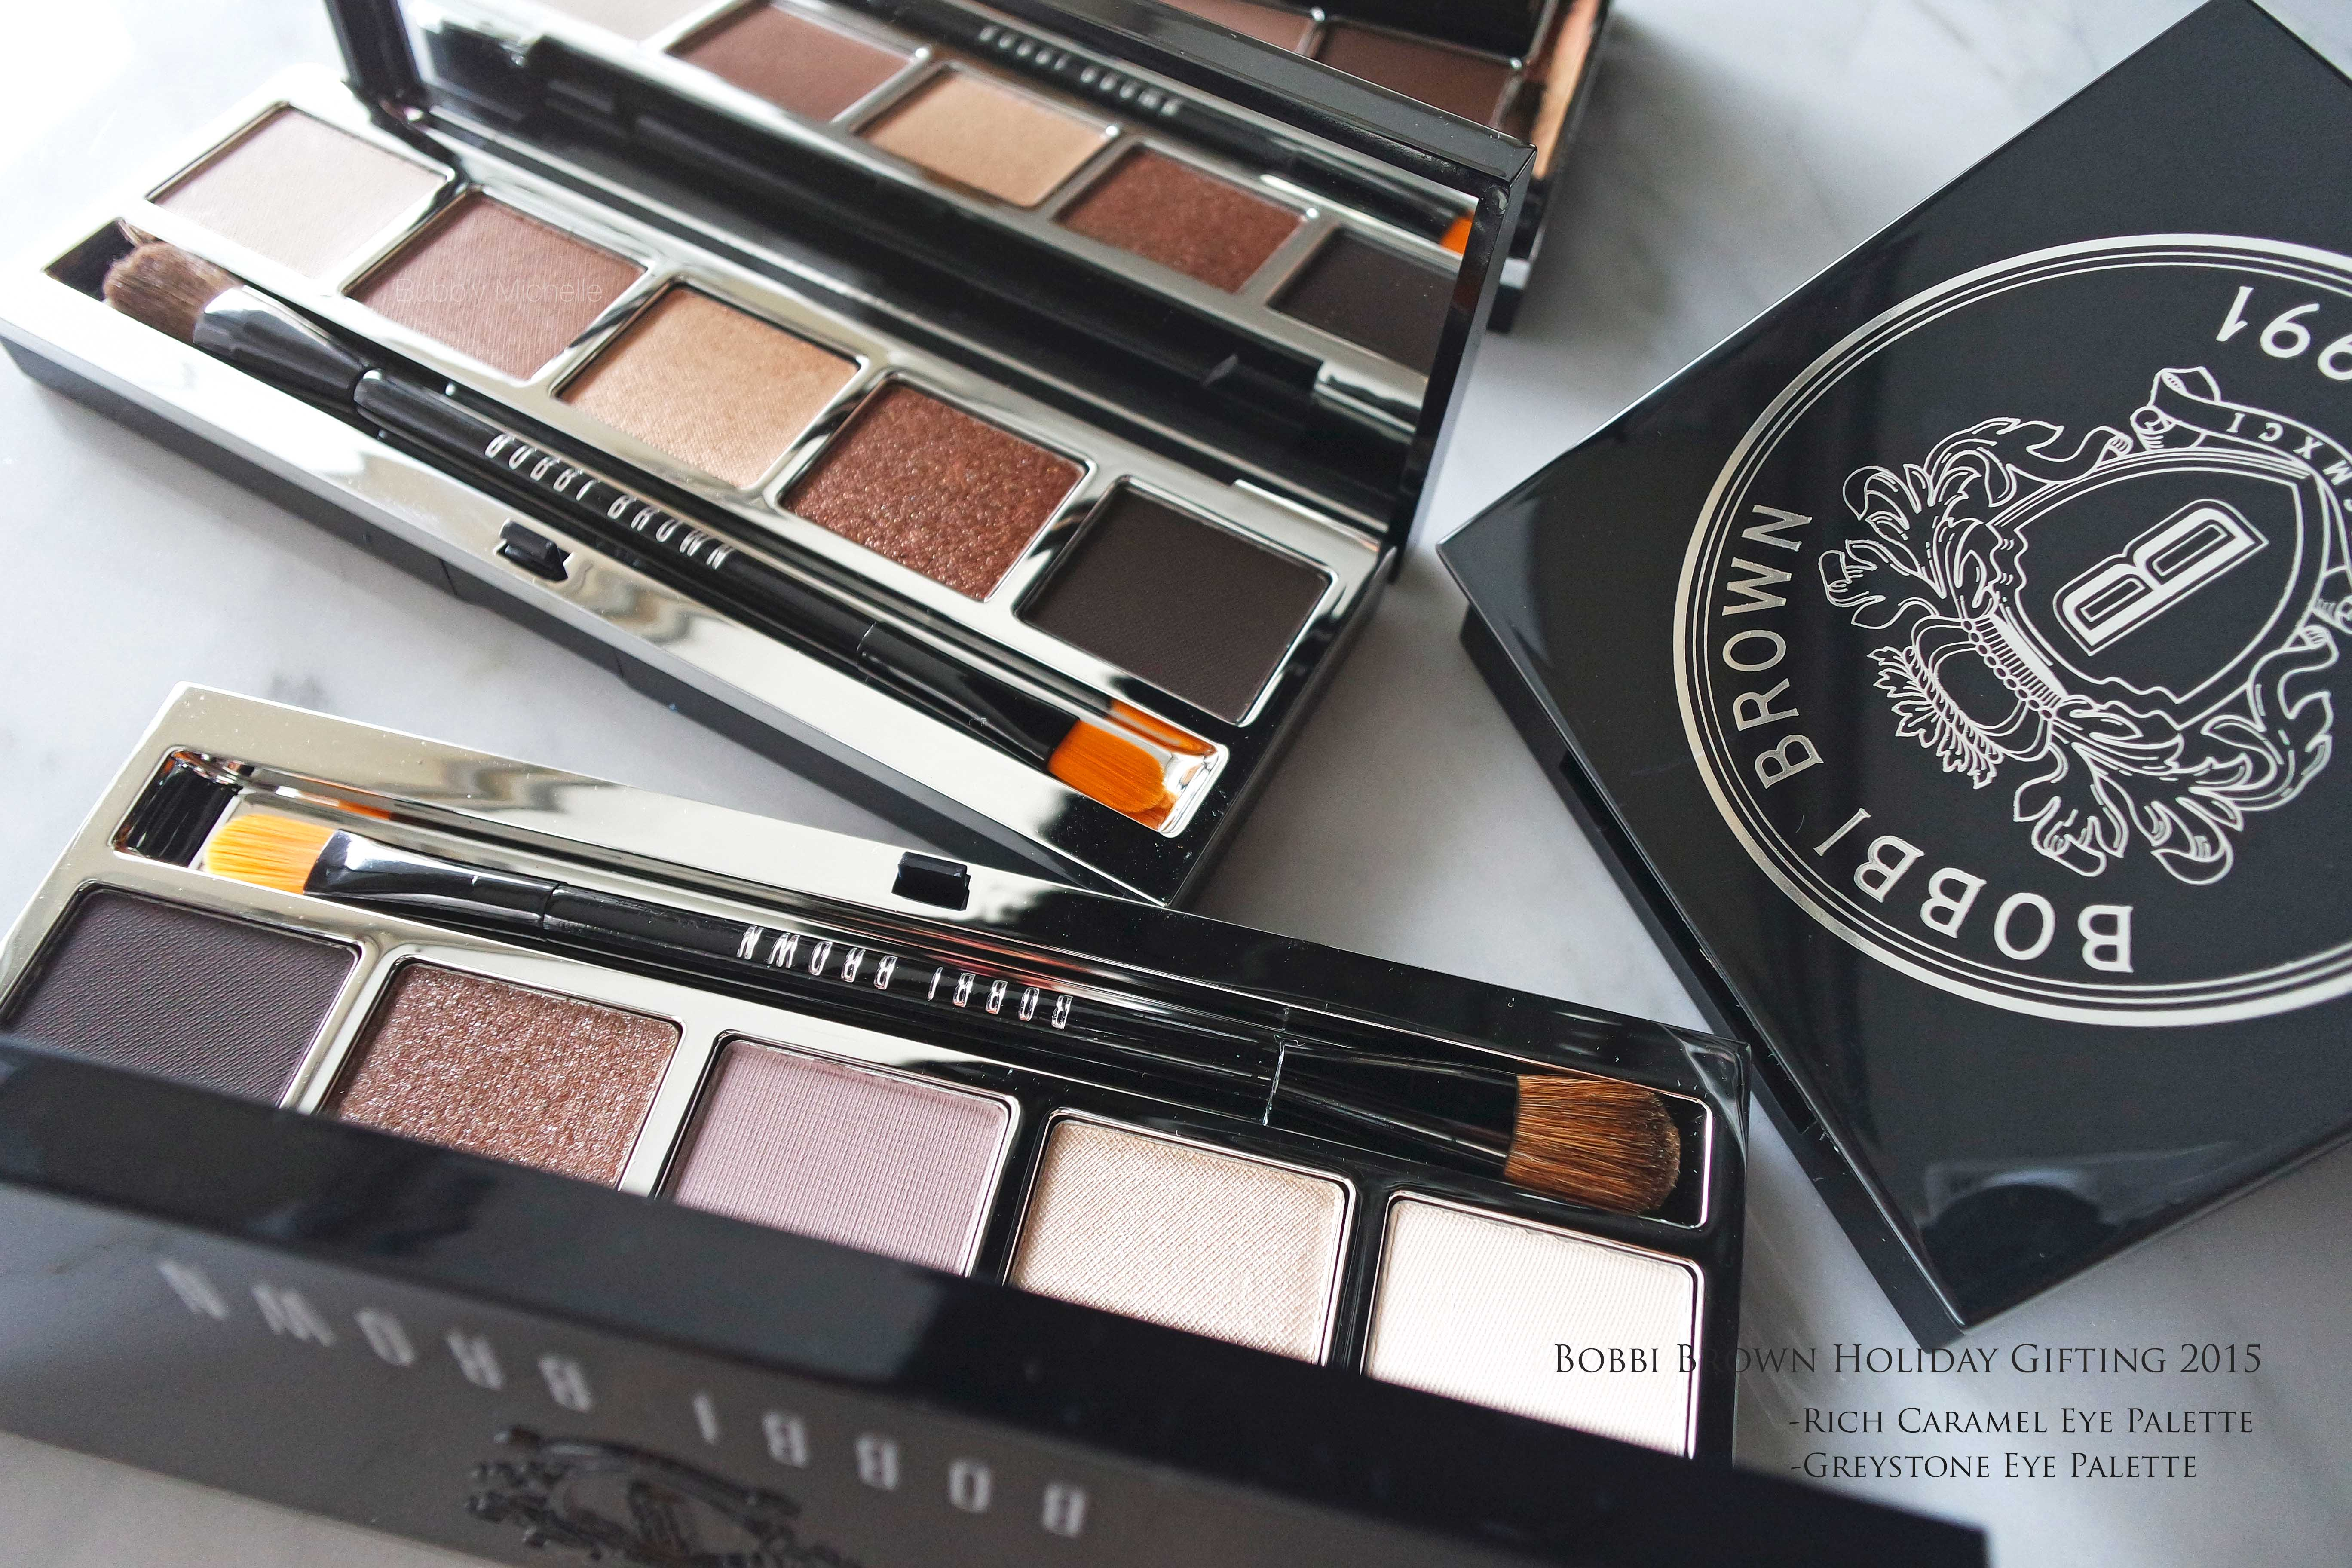 Bobbi Brown Holiday 2015 Preview Collection Photos Swatches